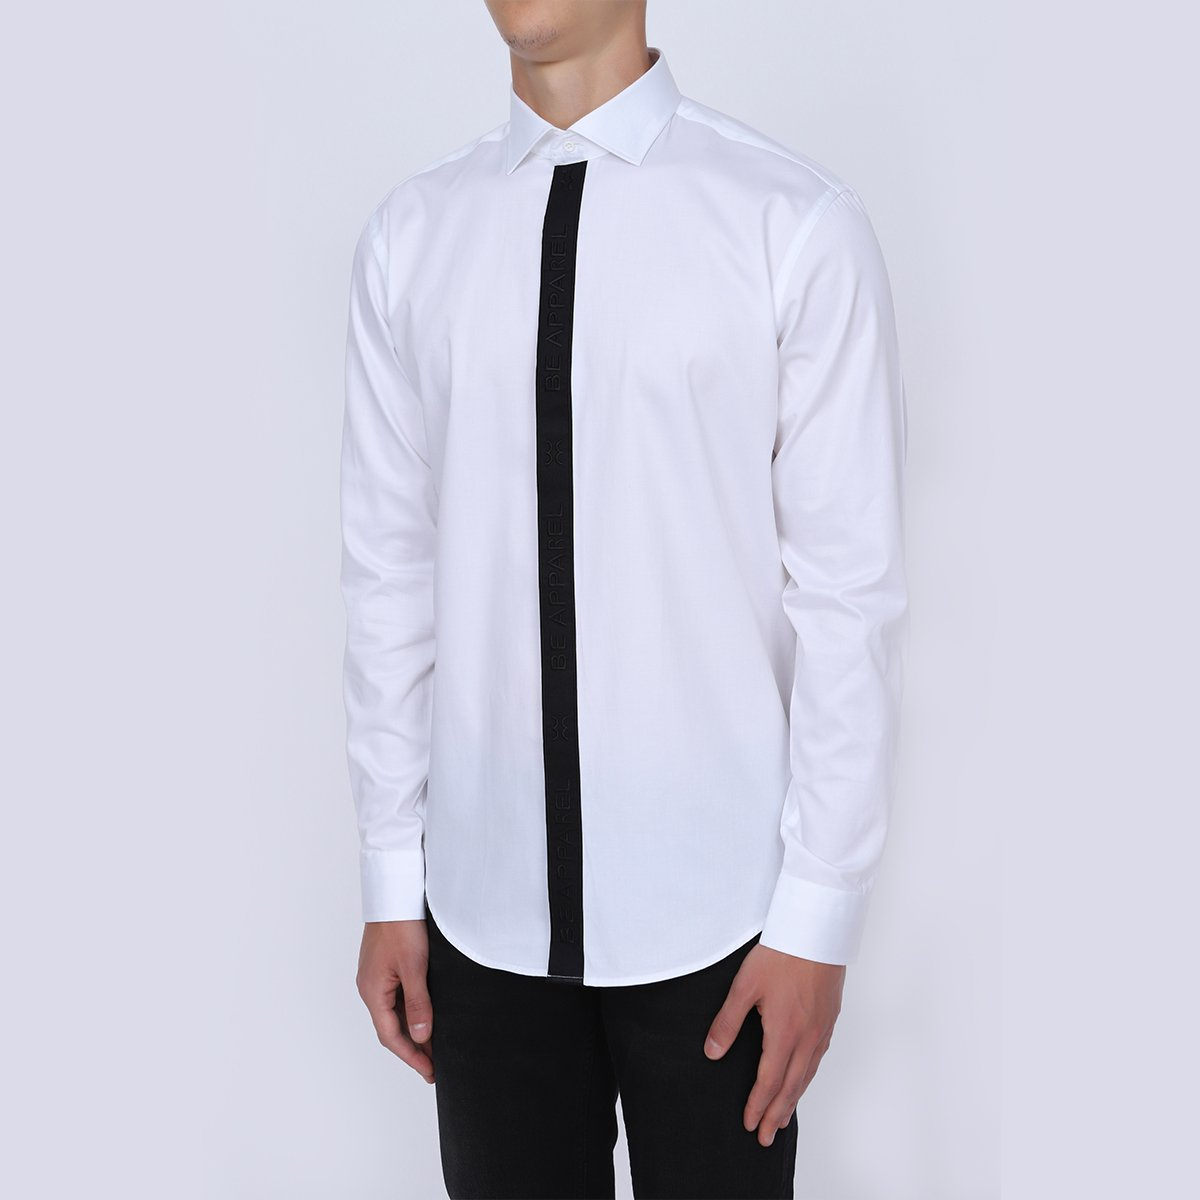 Be Hollywood Mens Slim Fit White Shirt | Classic Cut Placket Trim Formal White Shirt | Long Sleeve Formal Wear White Shirt for Men